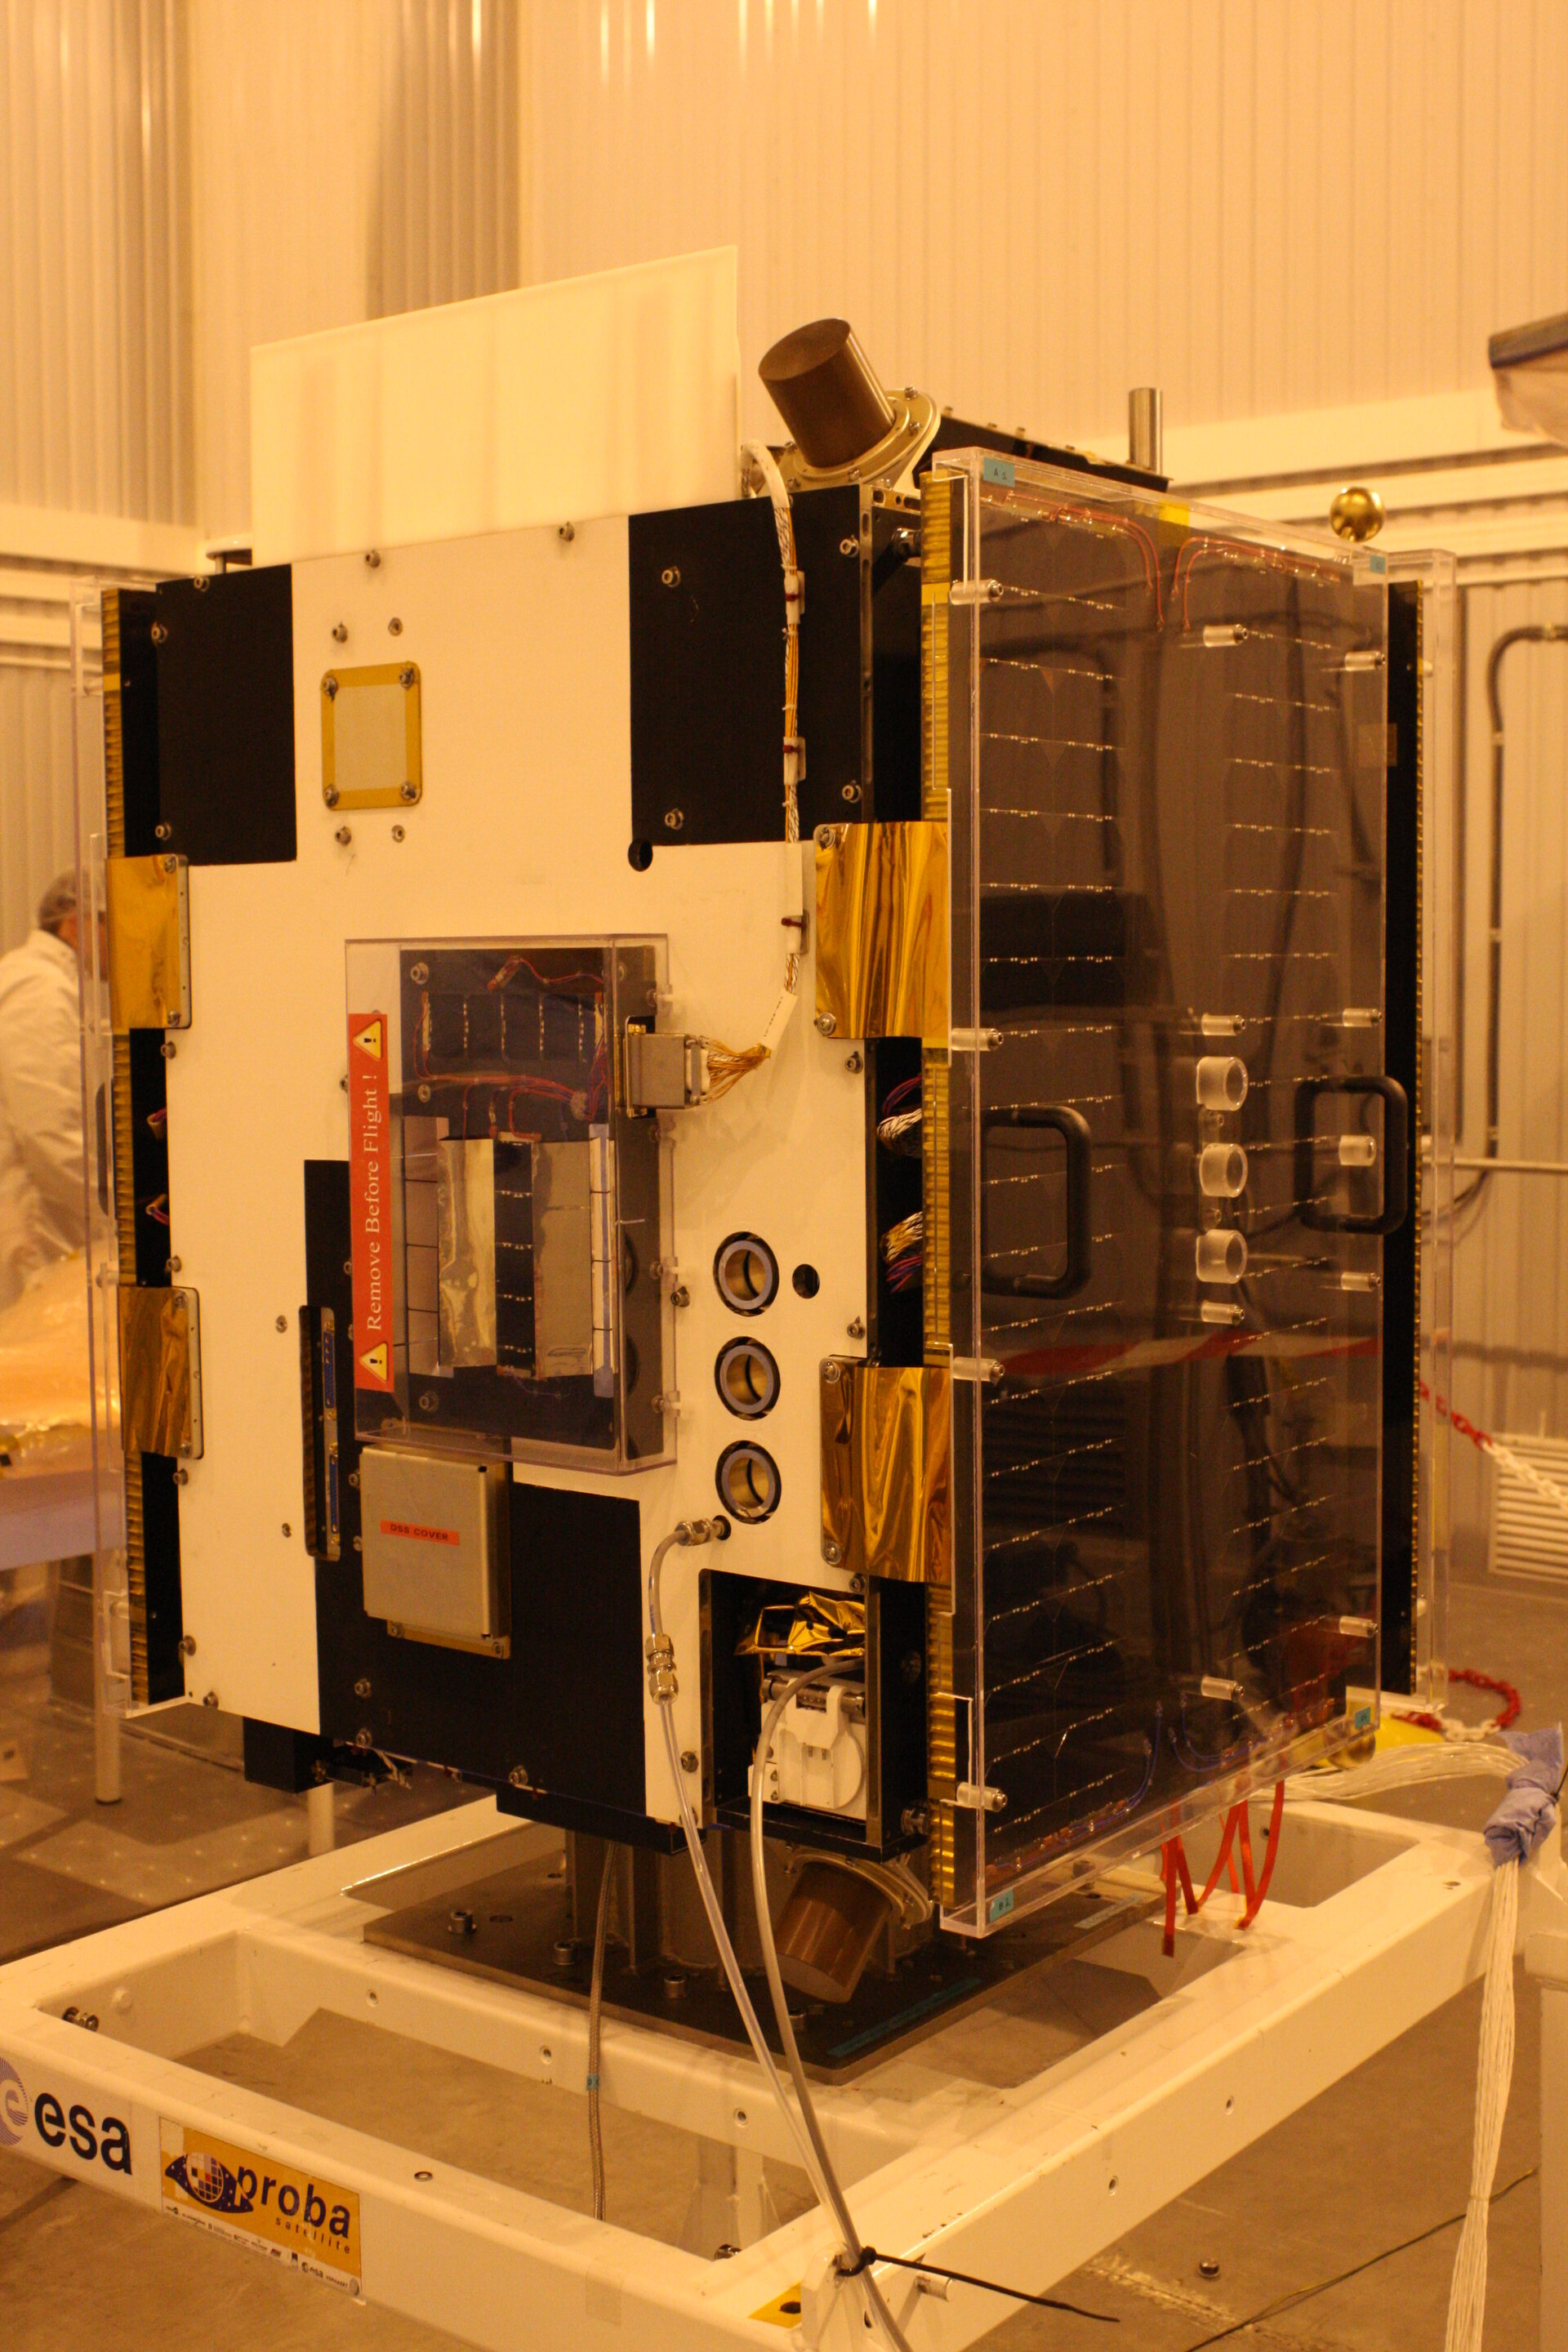 Proba-2 ready for Joint Operations with Rockot Launcher authorities